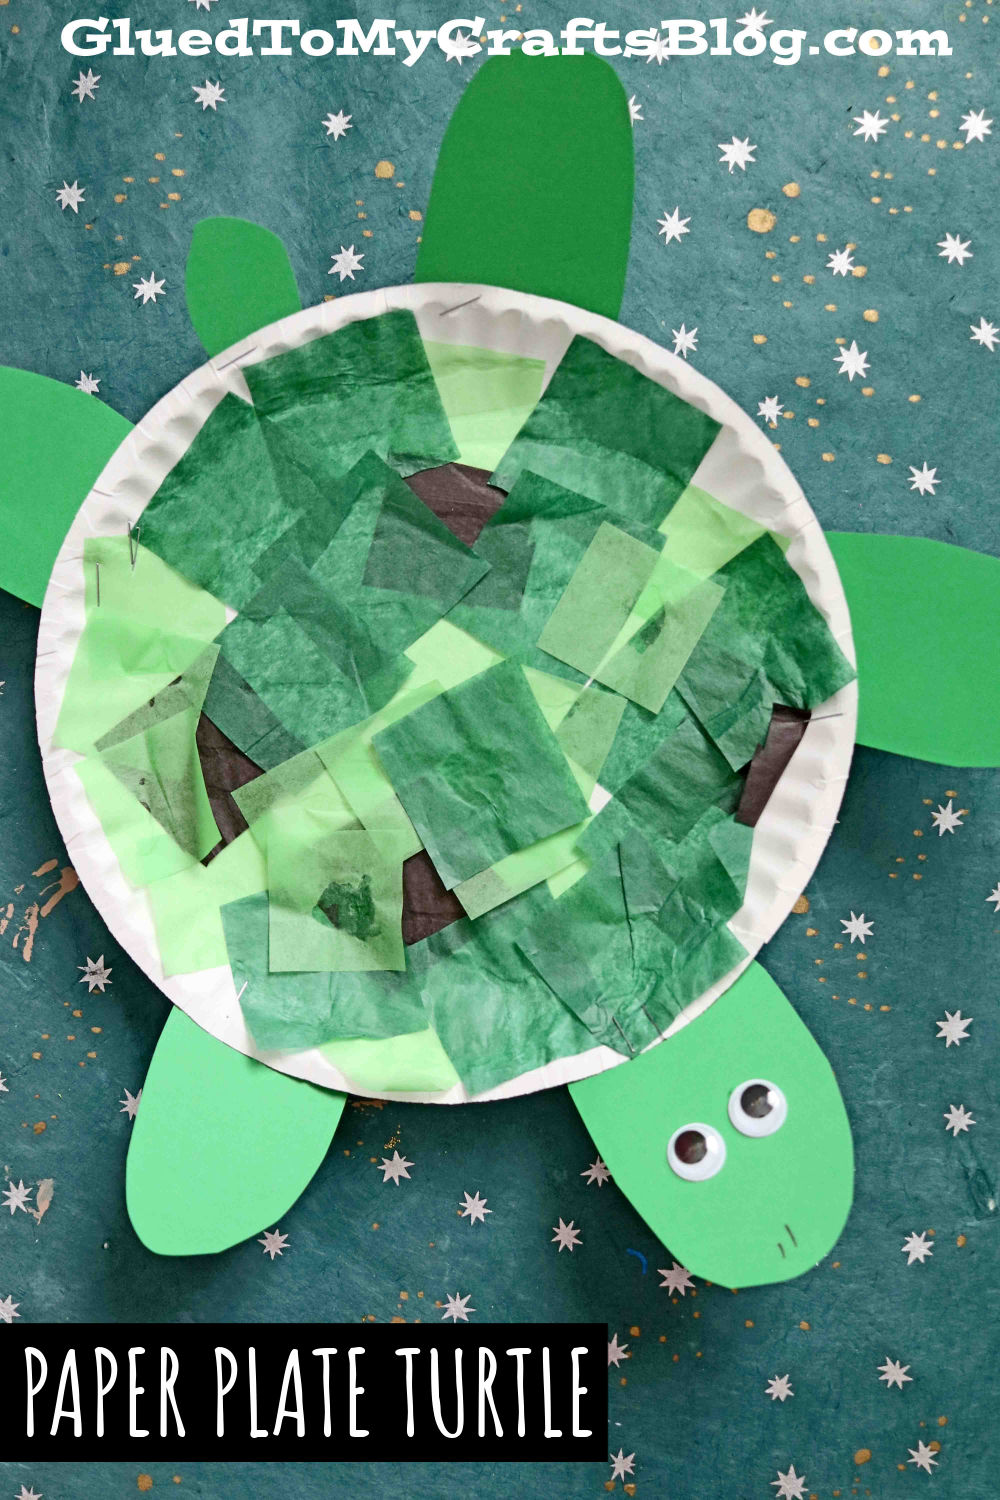 Paper Plate Turtle - Super EASY Kid Craft Idea For Summer!